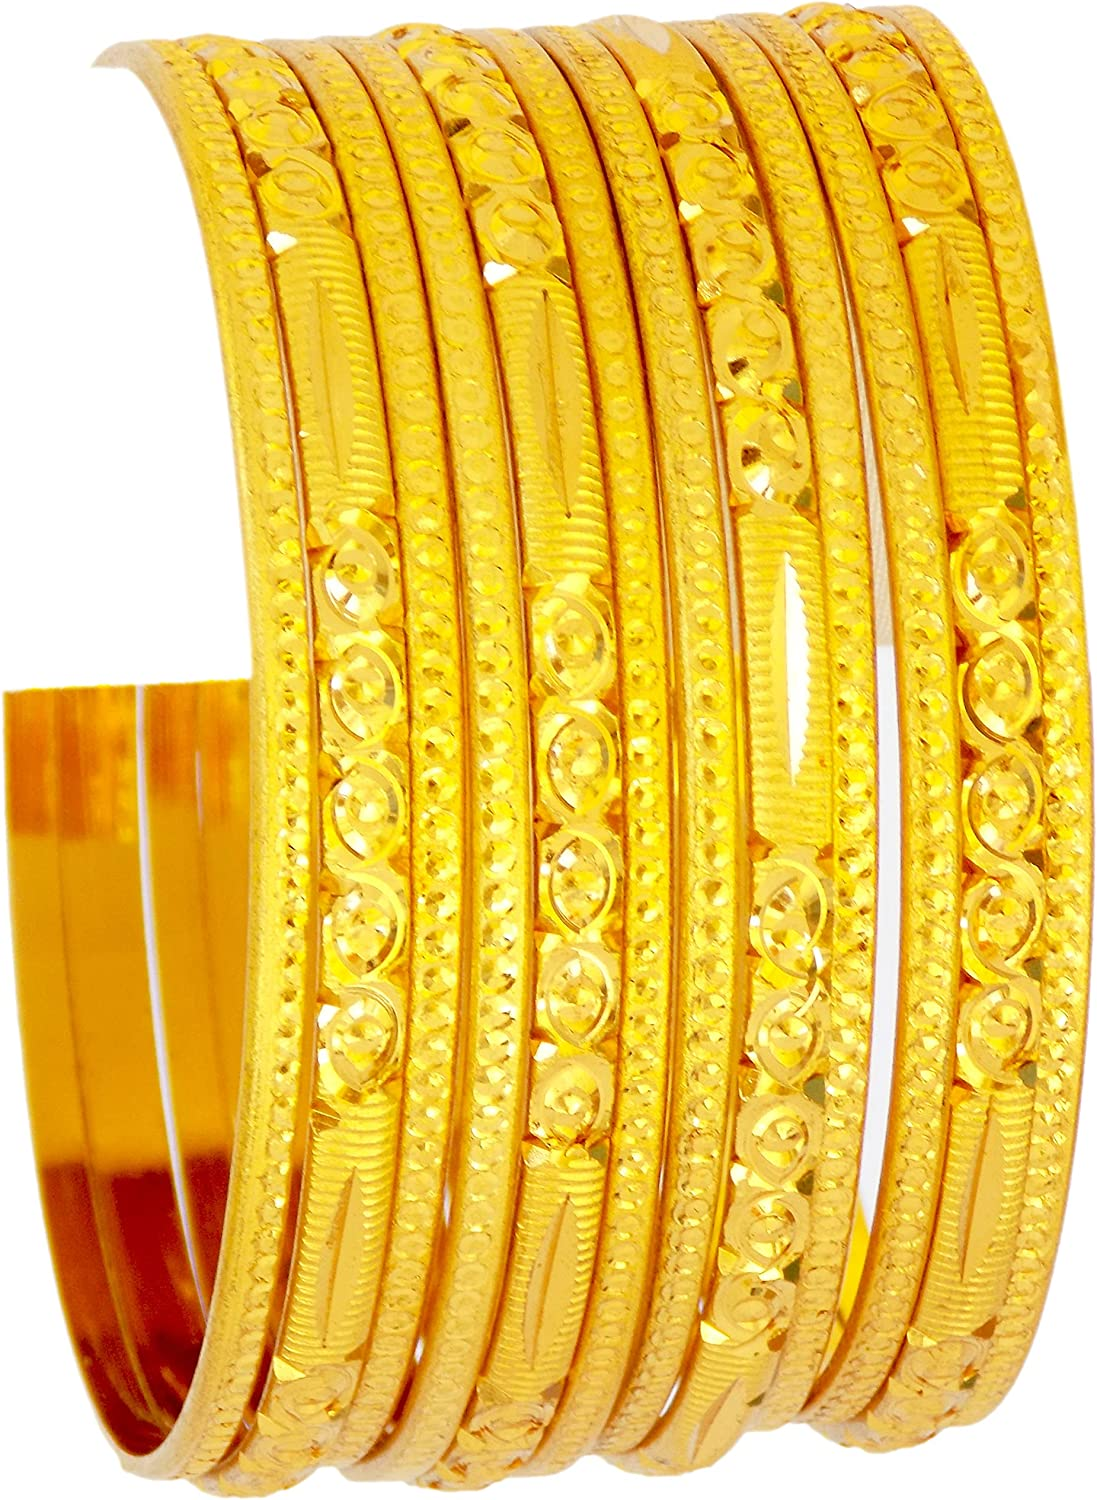 JD'Z COLLECTION Indian Gold Plated Bangles Jewelry for Women & Girls Gold Plated Jewelry for Women